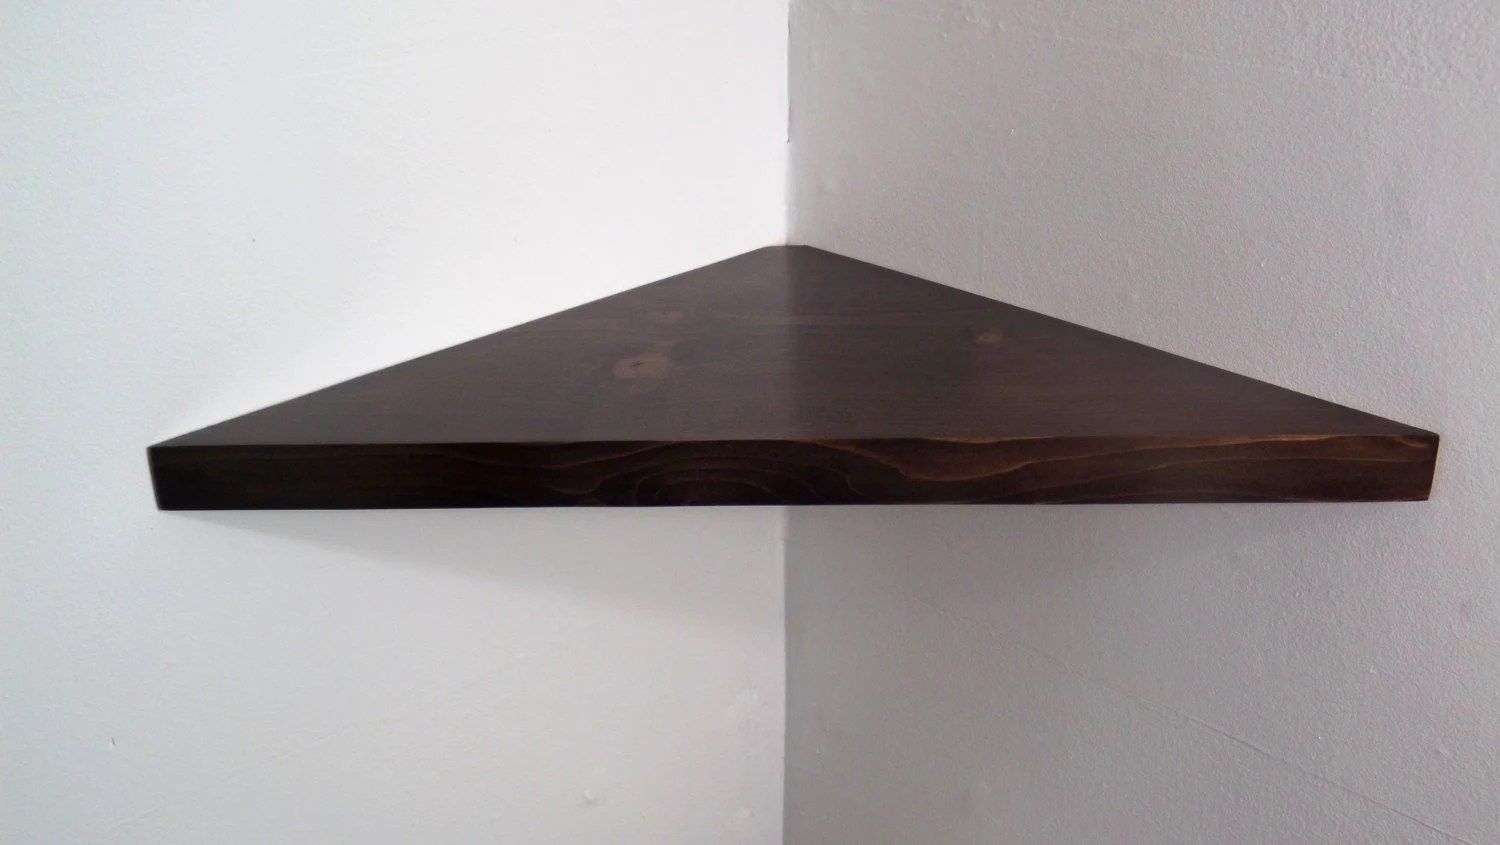 24 Inch Floating Corner Shelf With Espresso Stain By